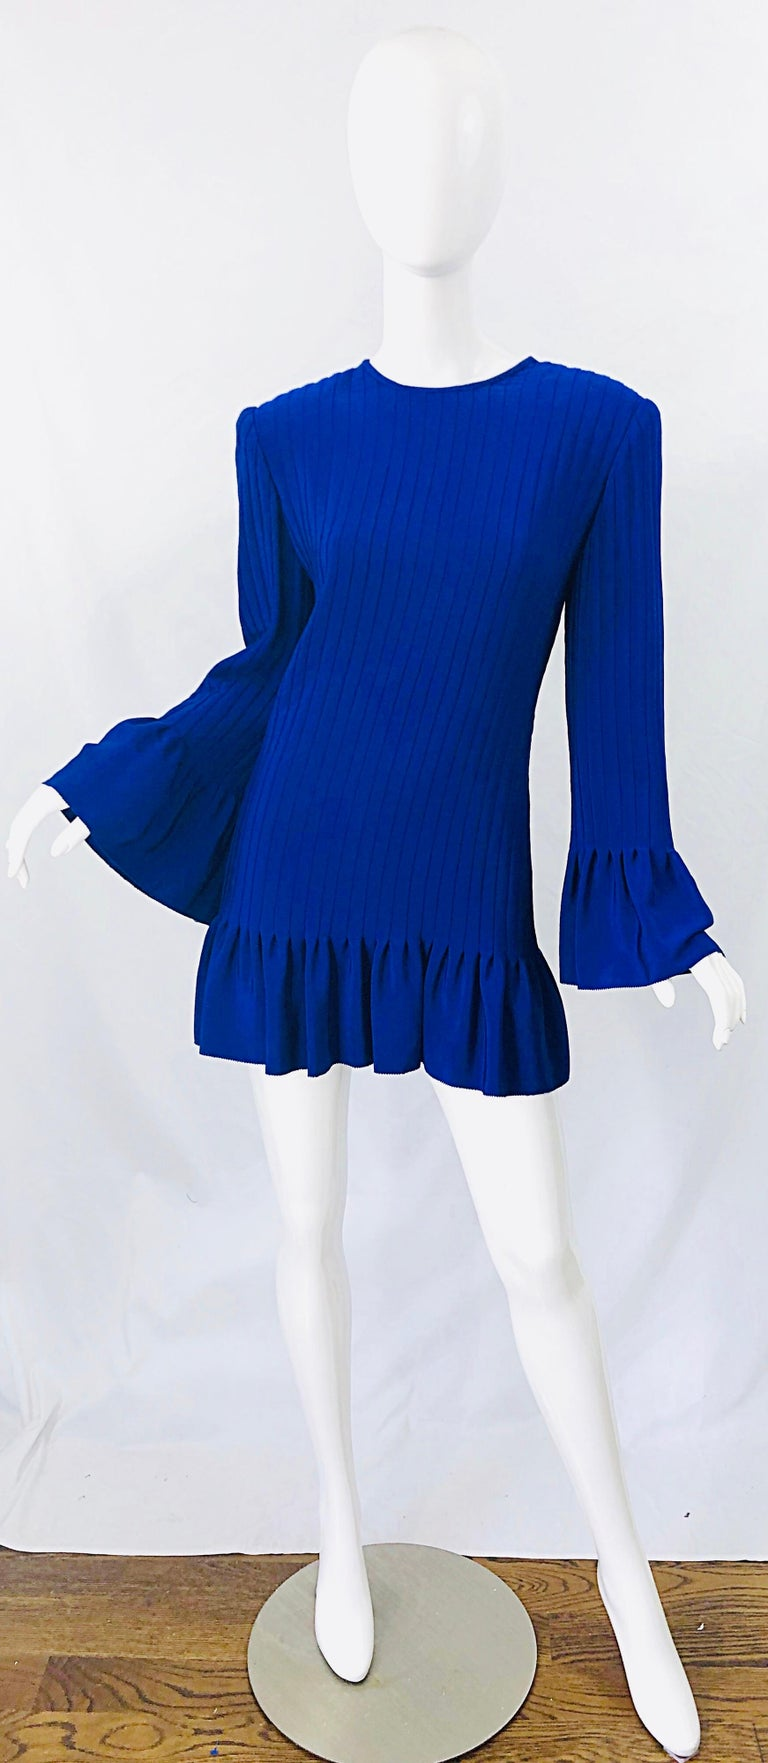 Chic early 1980s TARQUIN EBKER royal blue silk pleated mini dress or tunic top ! Ebker was a high society designer throughout the 60s, 70s, 80s and 90s. His work was known to be couture quality, with heavy attention to details. Hidden zipper up the